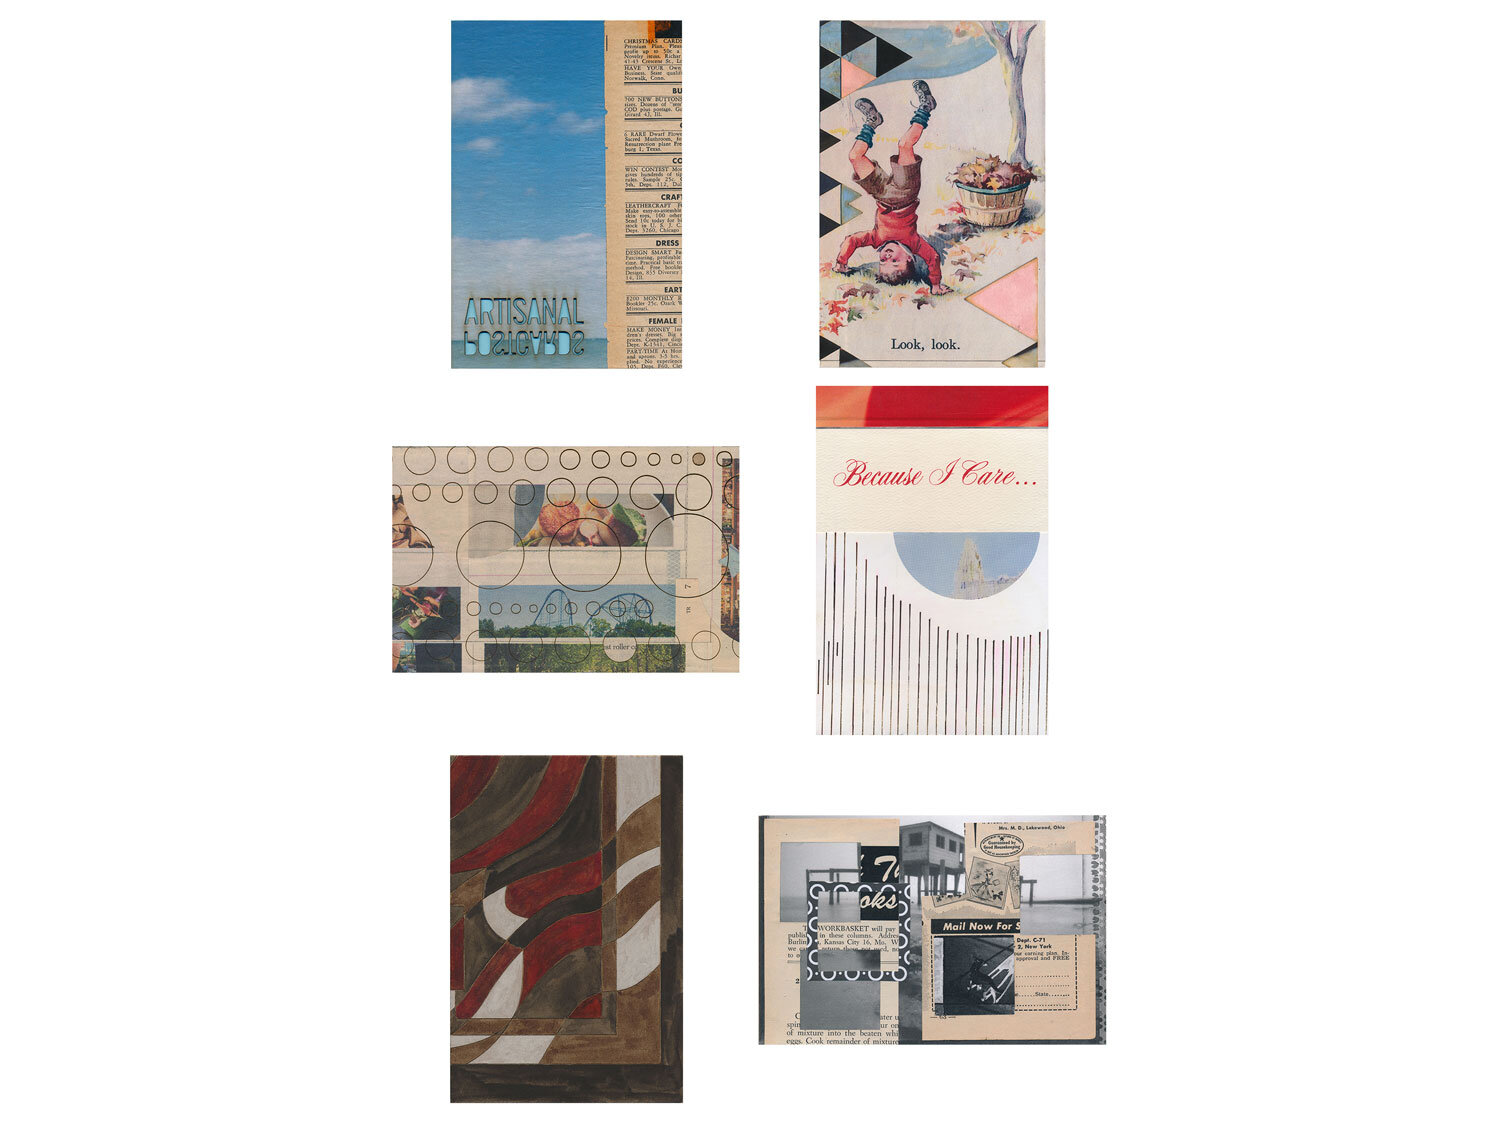 A completed mail art gift subscription, snail mailed collage postcards, each one handmade from a mother to her daughter, July - November 2017.  Artisanal Postcards Numbers 1,652 • 1,673 • 1,379 • 1,702 • 1,721 • 1,738 • 1,760